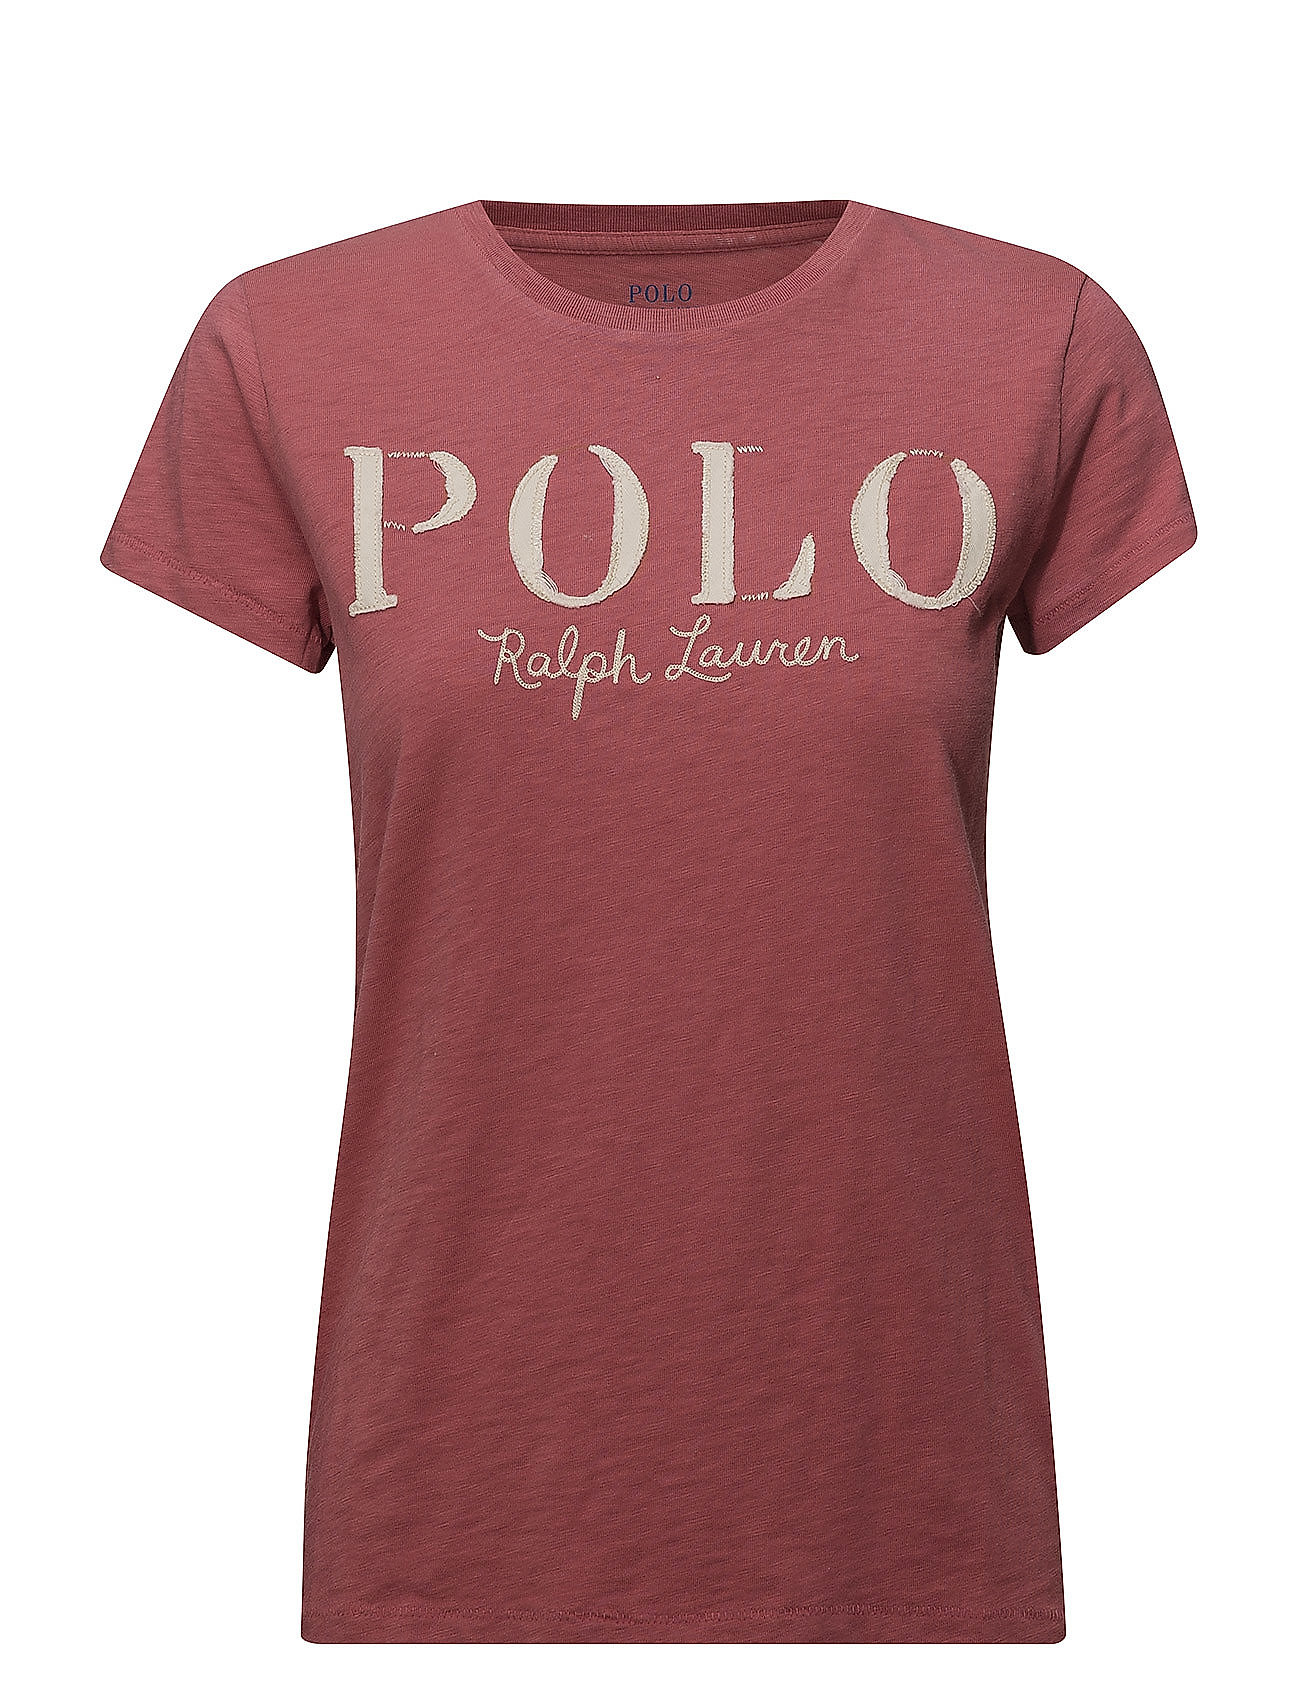 Polo Ralph Lauren Polo Jersey Graphic T-Shirt